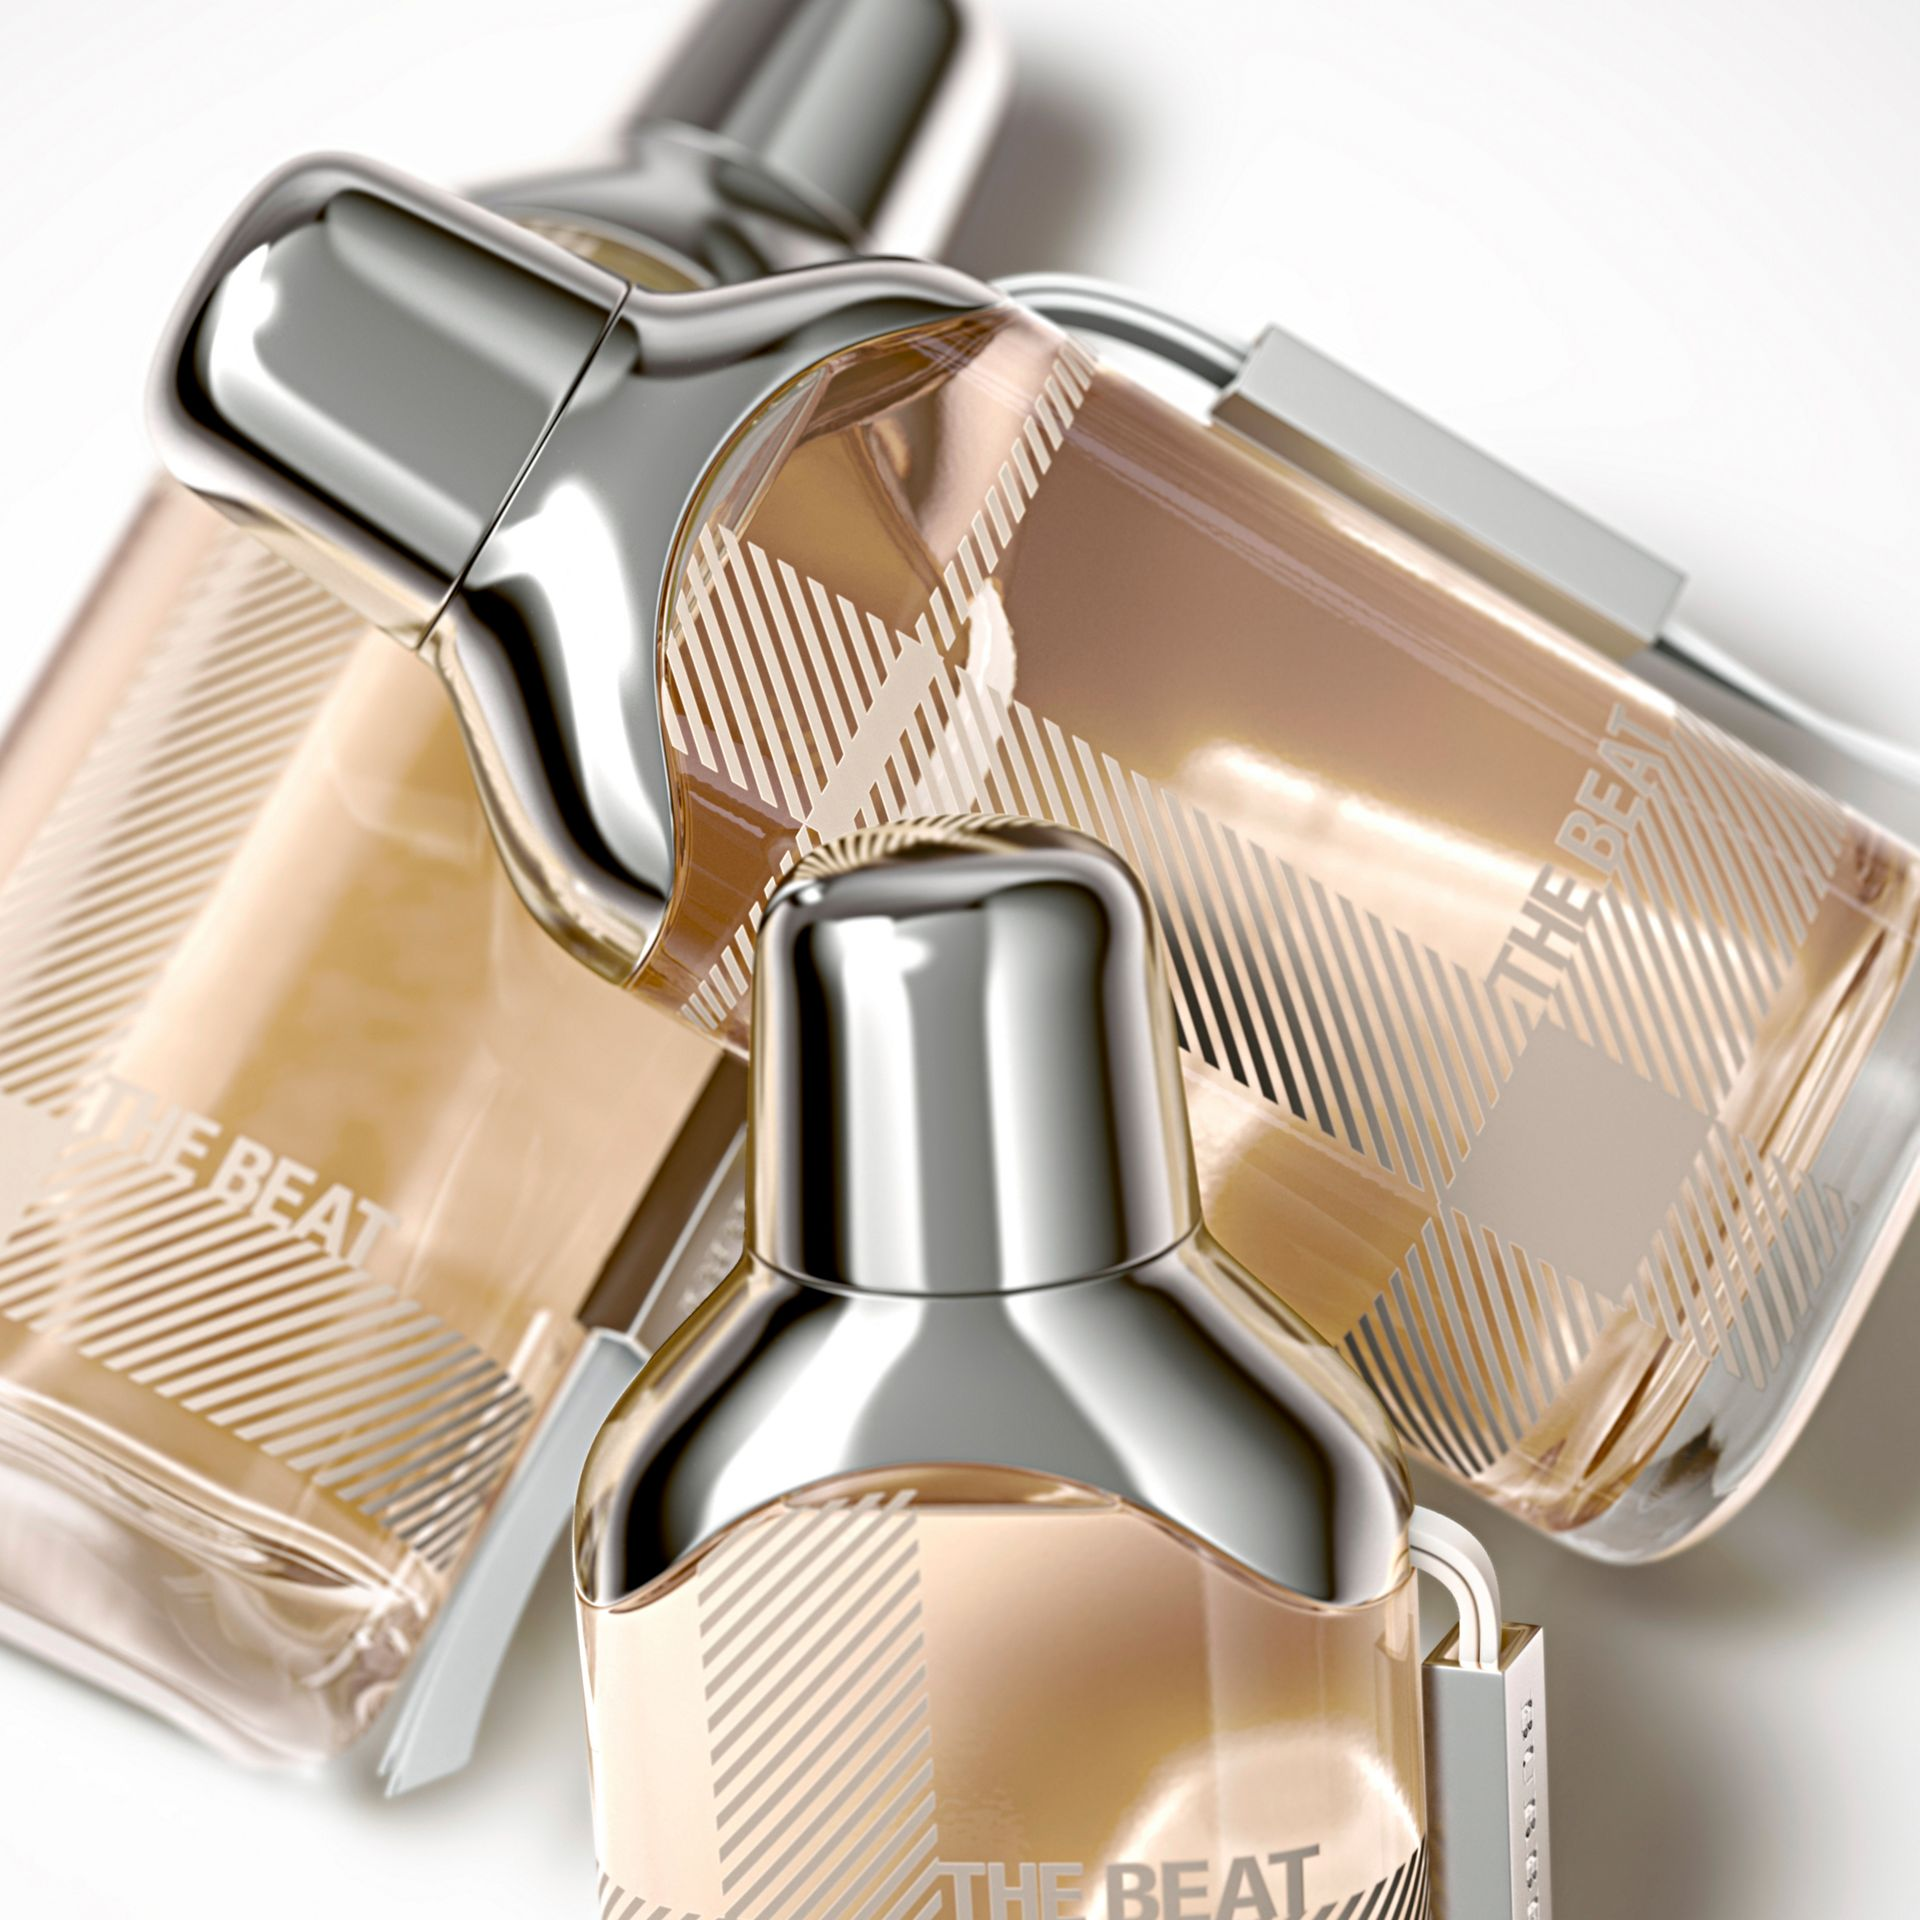 Burberry The Beat for Women Eau de Parfum 30 ml - Donna | Burberry - immagine della galleria 2